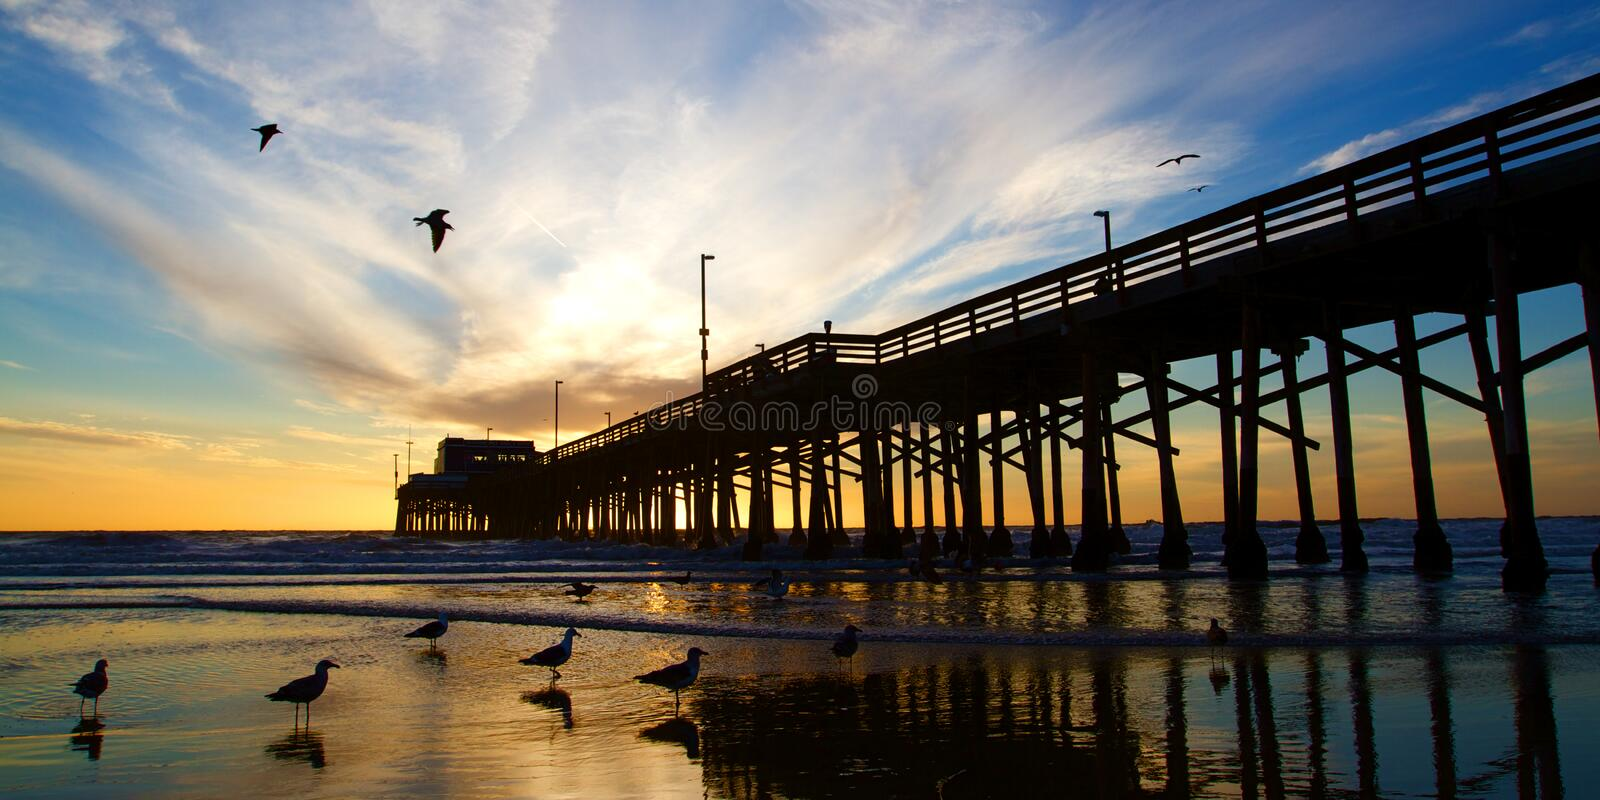 Newport Beach California Pier at Sunset royalty free stock image